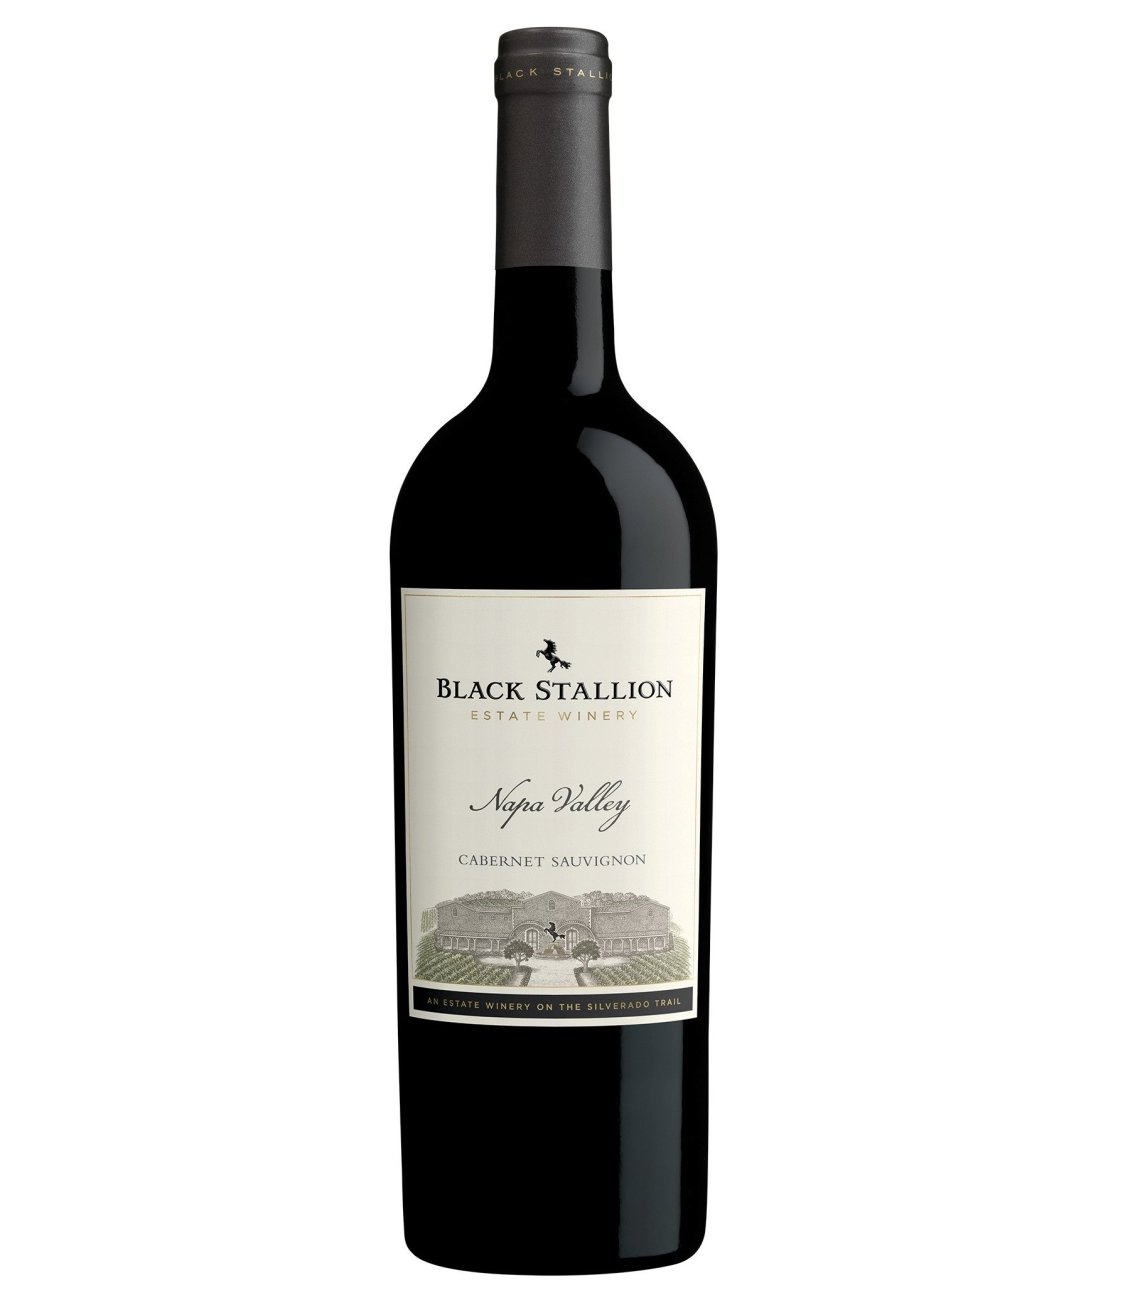 2016 Black Stallion Cabernet Sauvignon Napa Valley